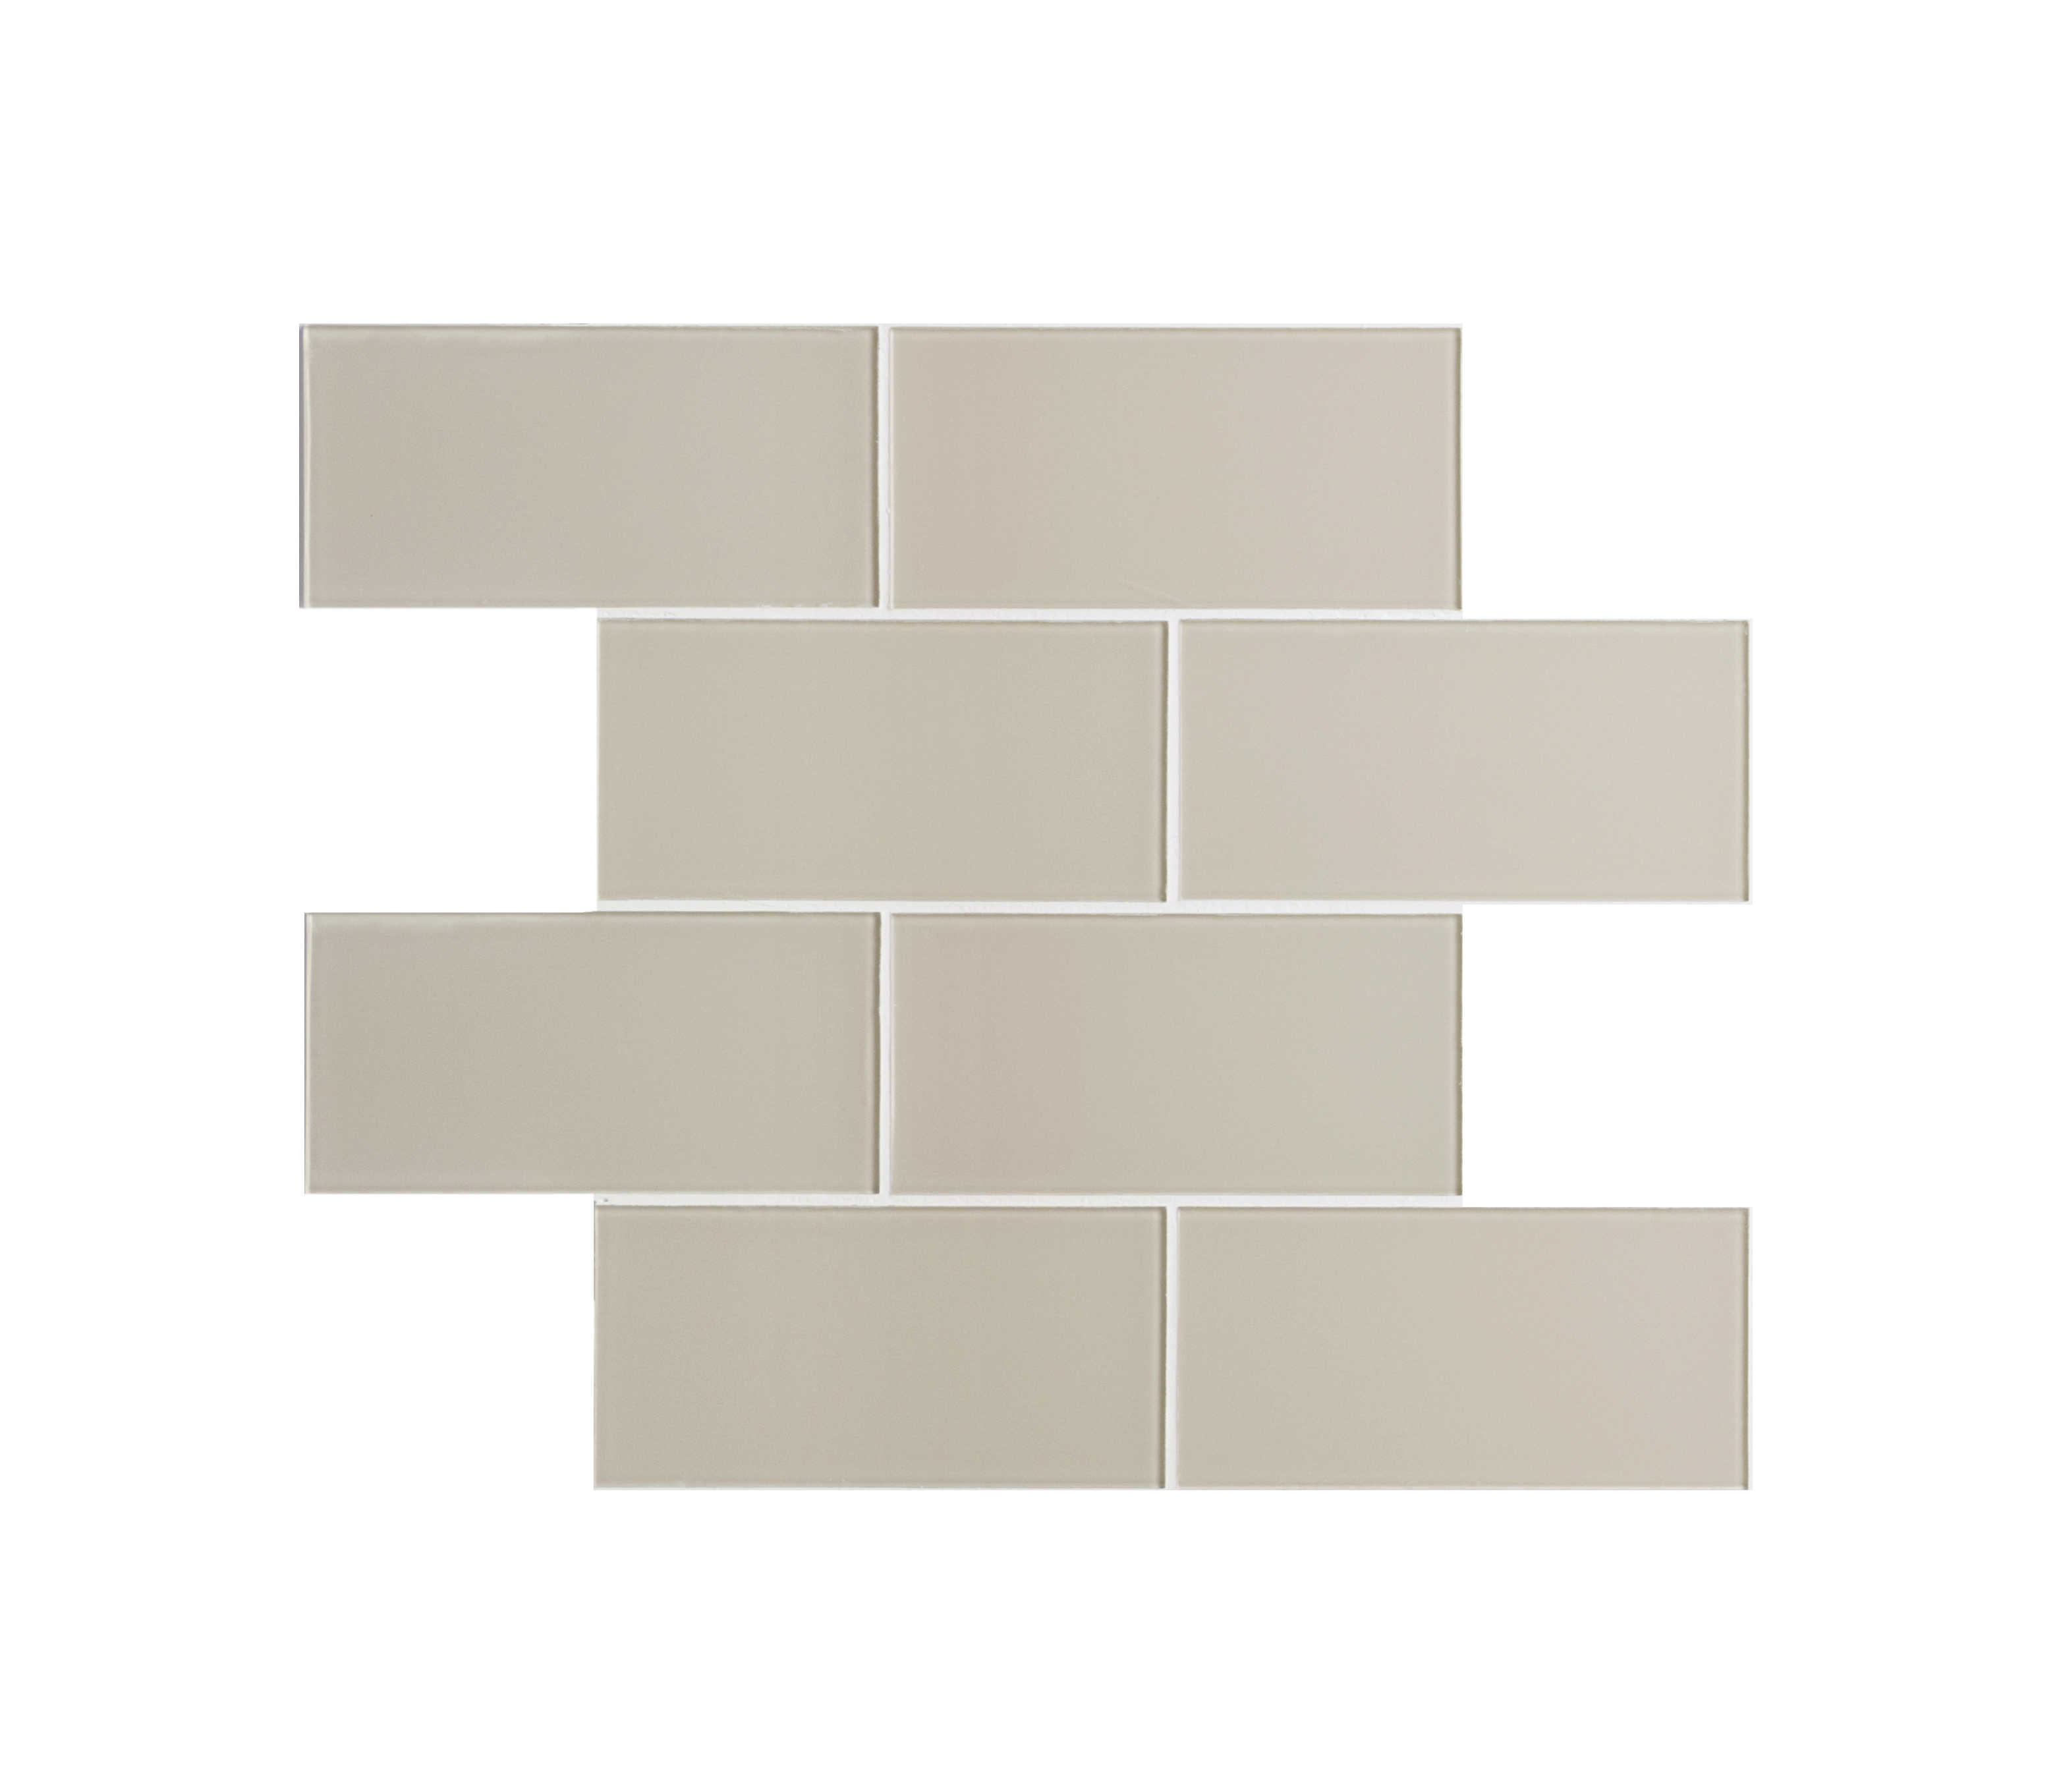 Quality Value Series 3' x 6' x 4mm Glass Subway Tile in Glossy Icy Gray - 8 square feet carton